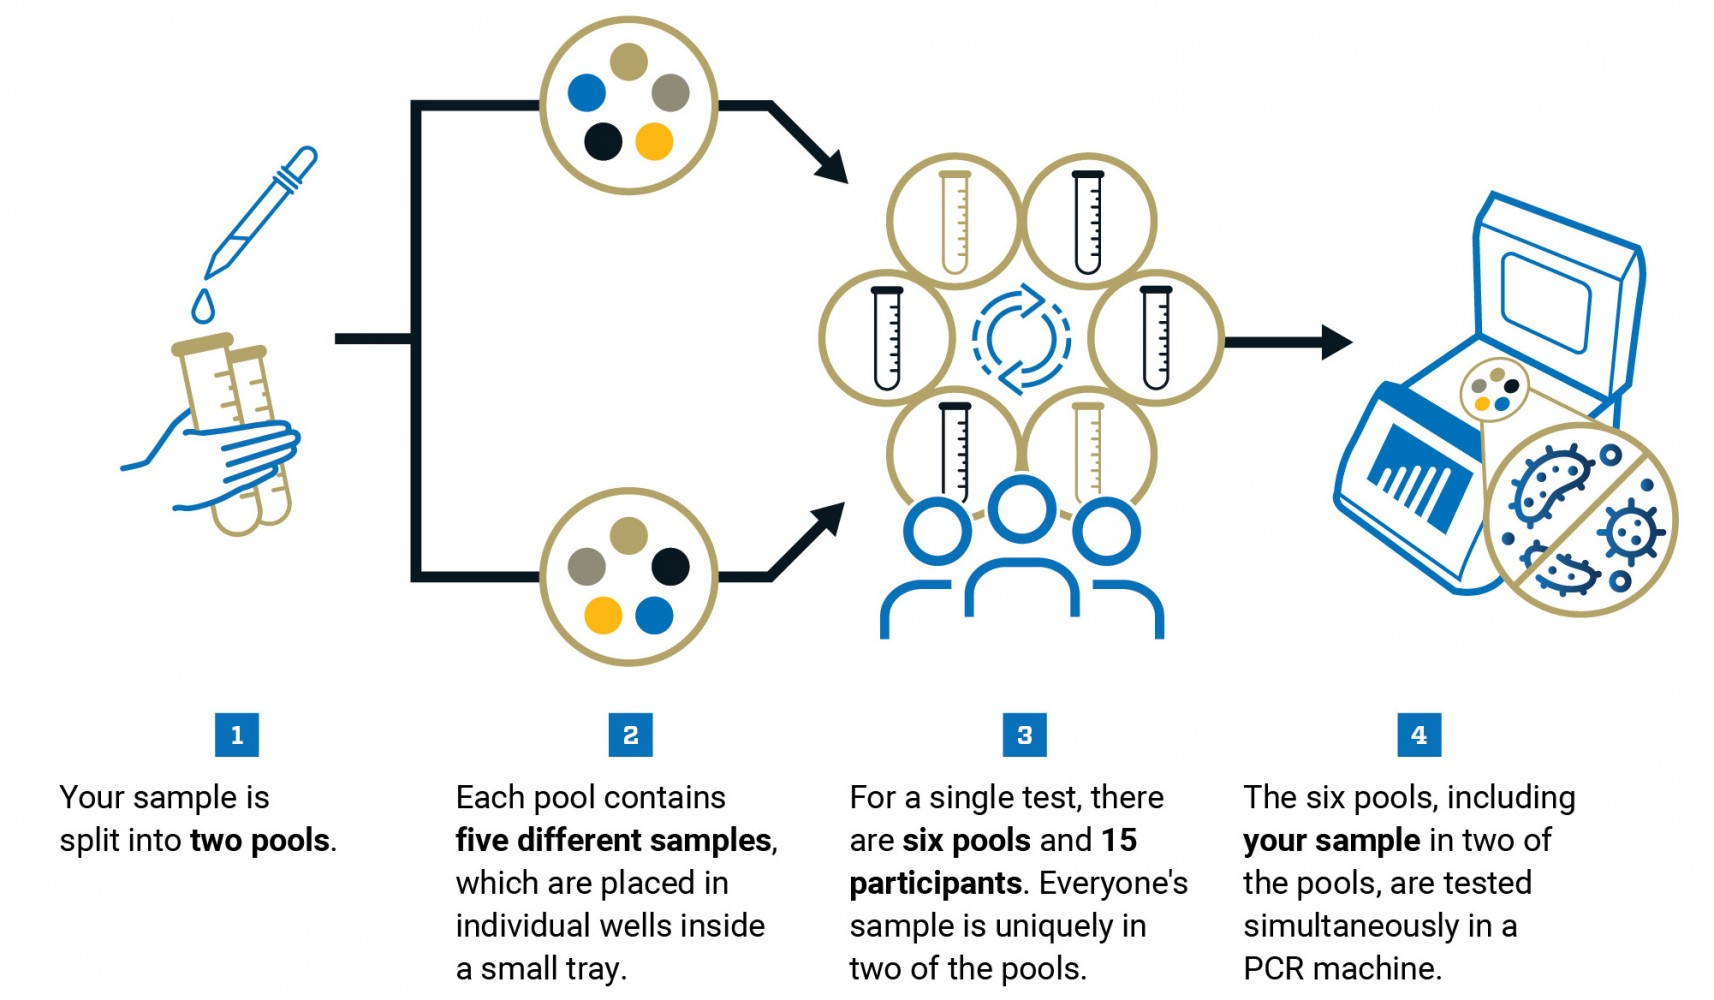 1. Your sample is split into two pools. 2. Each pool contains five different samples, which are placed in individual wells inside a small tray. 3. For a single test, there are six pools and 15 participants. Everyone's sample is uniquely in two of the pools. 4. The six pools, including your sample in two of the pools, are tested simultaneously in a PCR machine.